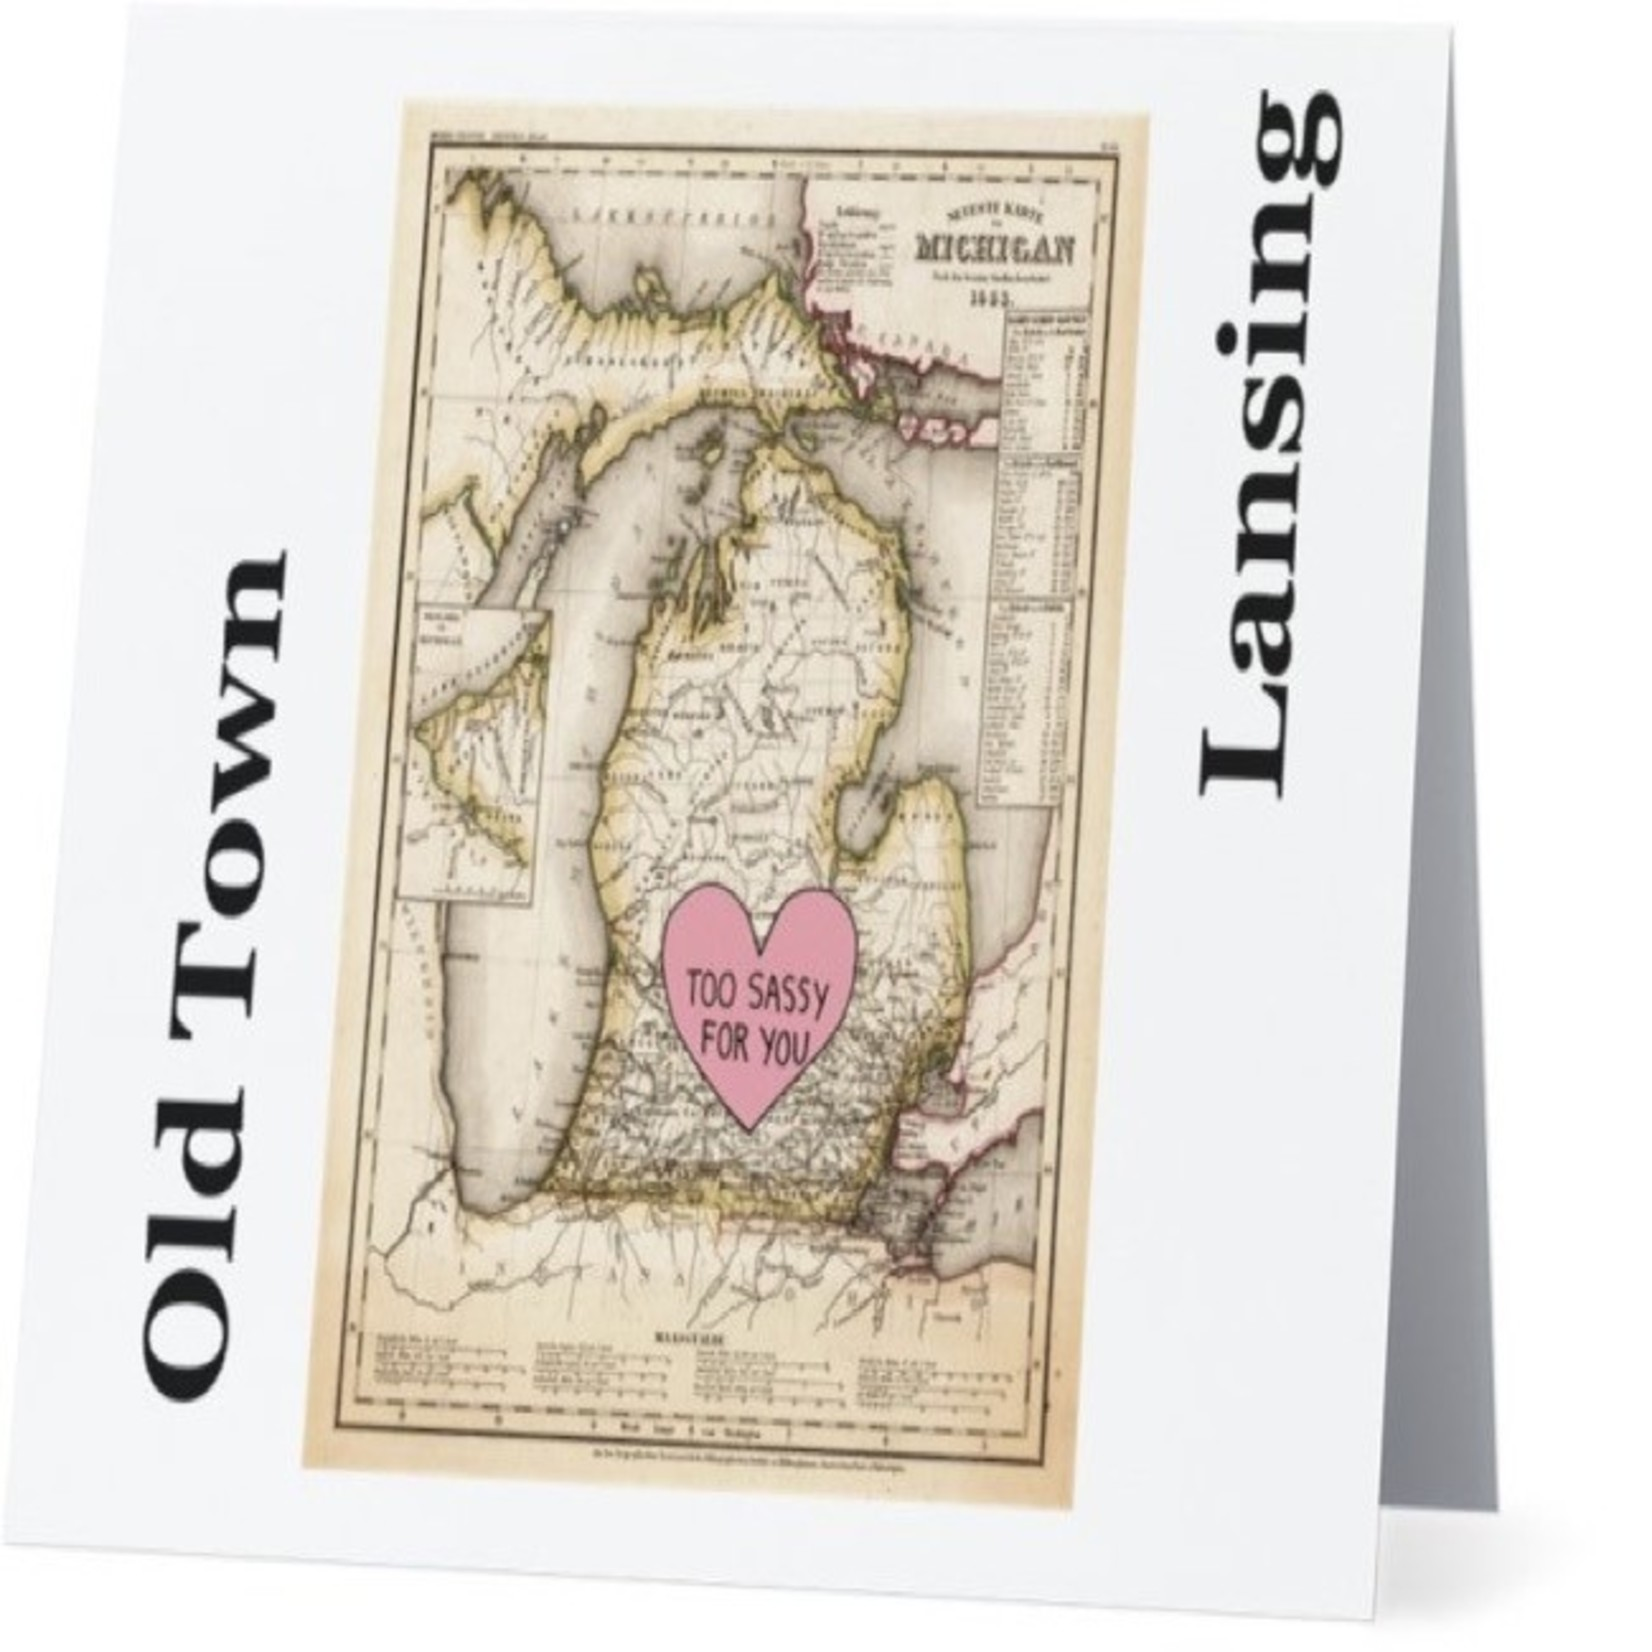 Bad Annie's Card #055 - Old Town Lansing, Too Sassy For You